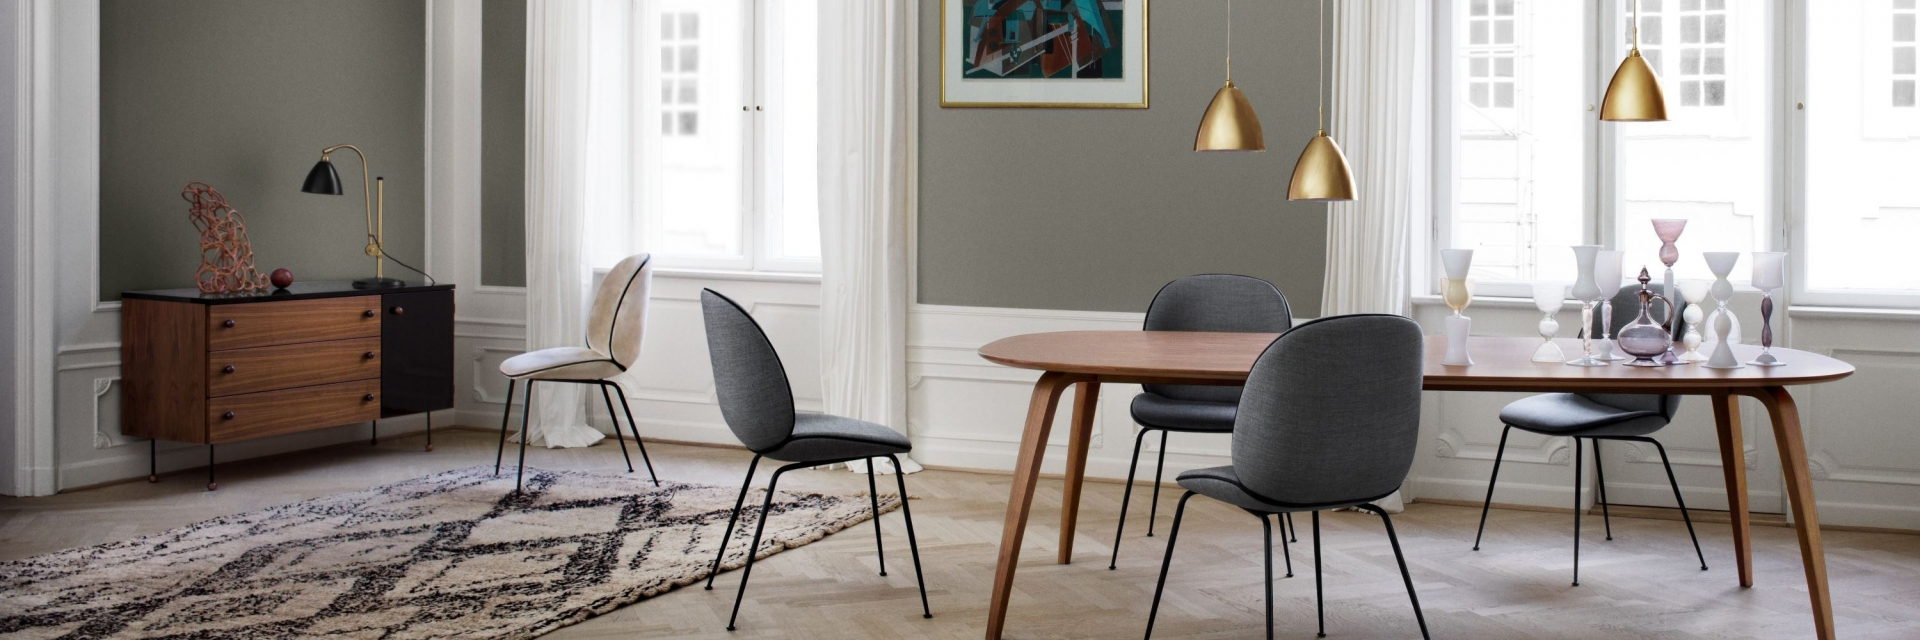 Beetle Chair by GUBI, The Beetle Collection designed by Gamfratesi for GUBI